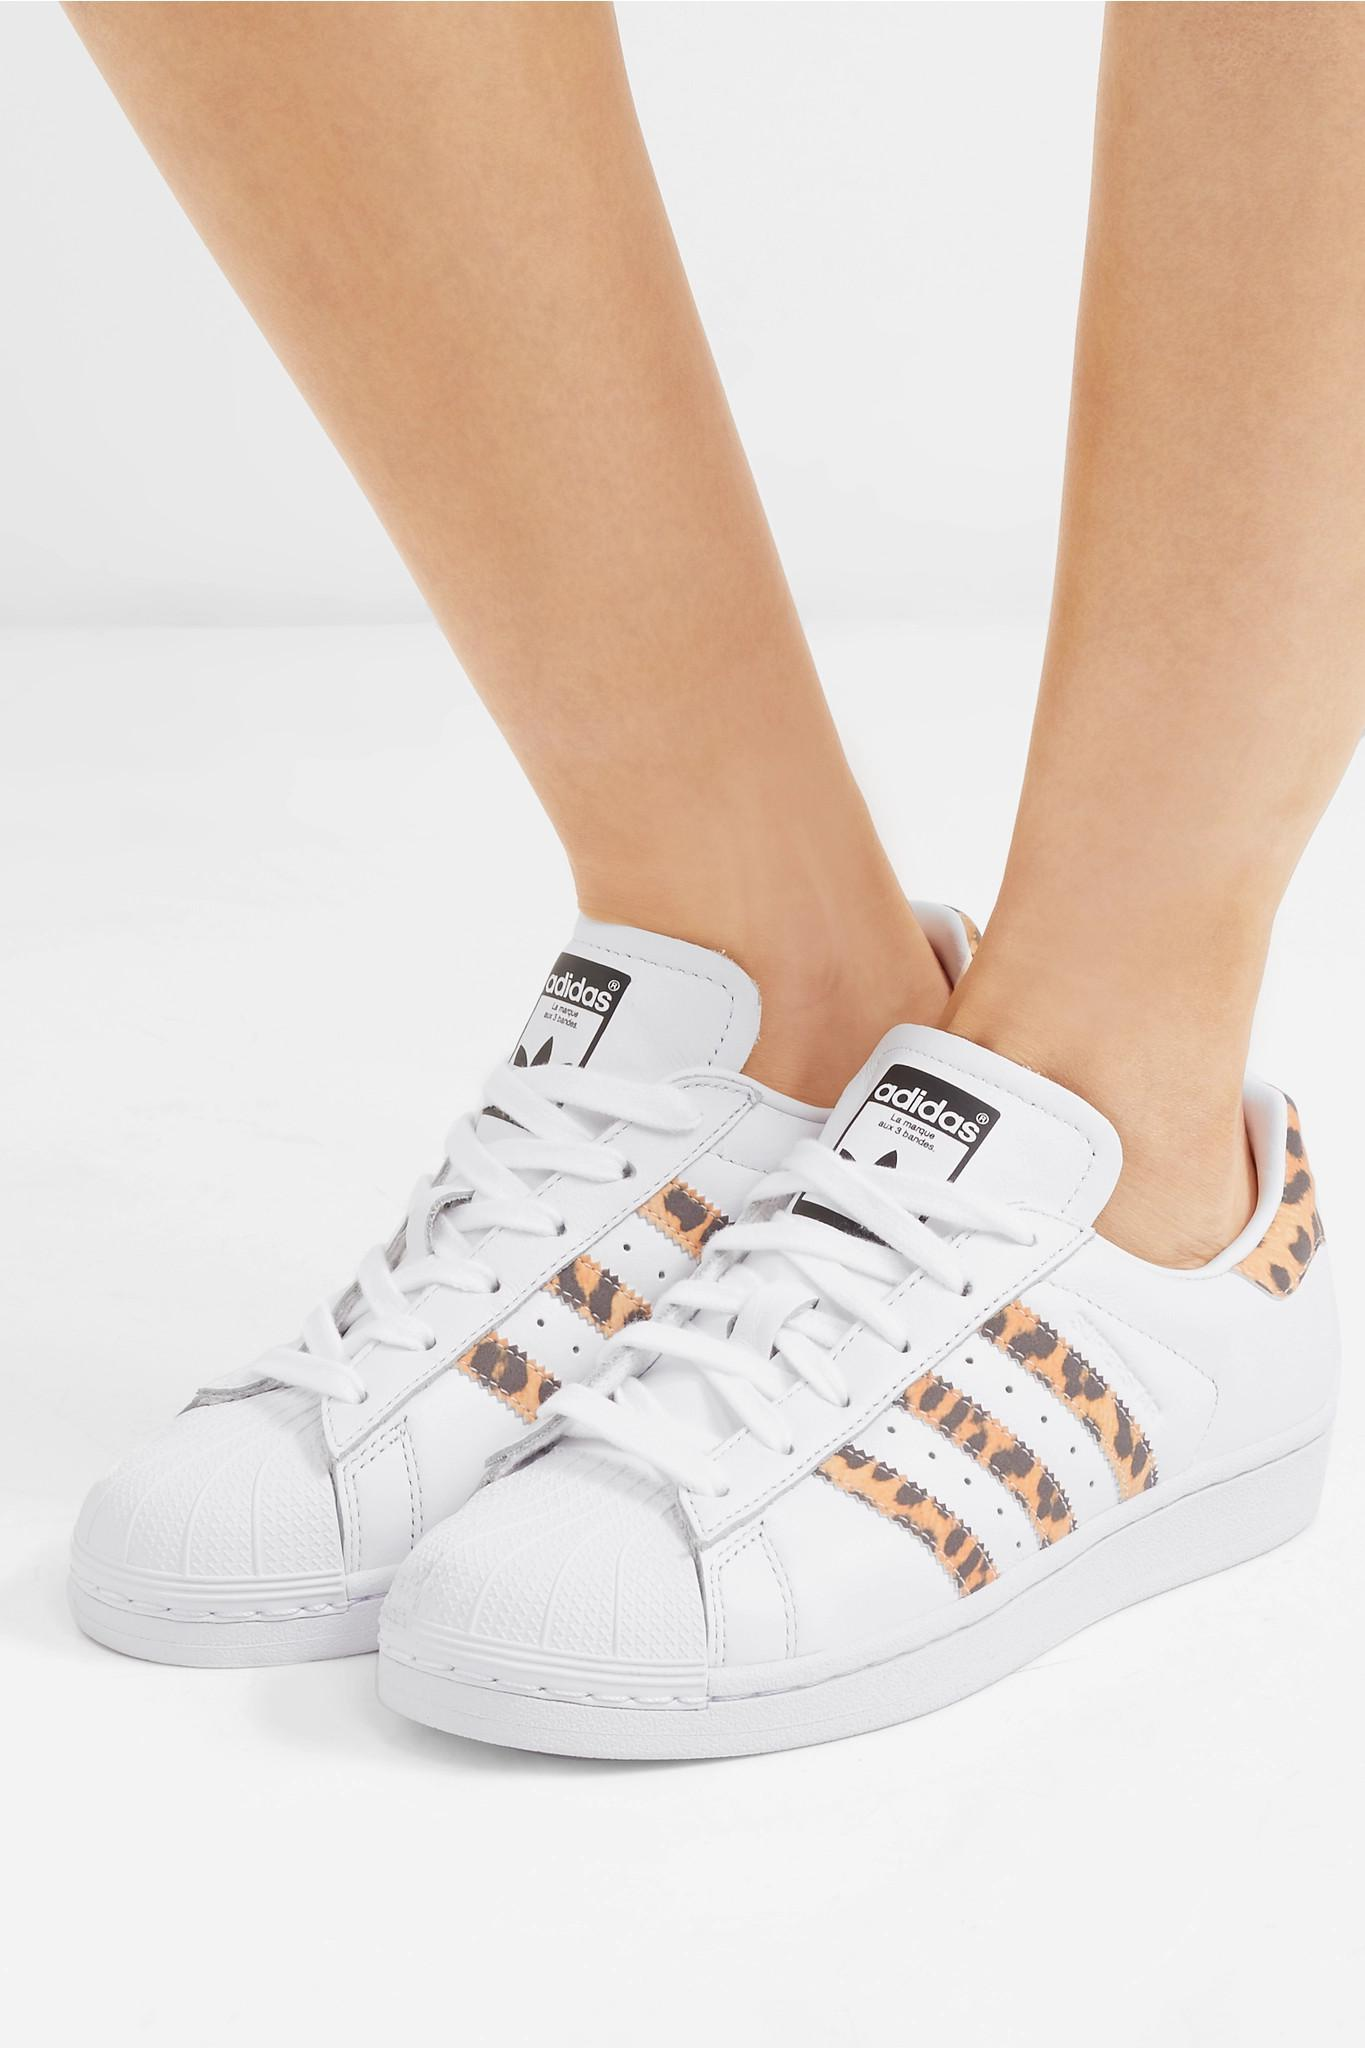 timeless design 4988f 6165a Adidas Originals - White Superstar Leopard Print-trimmed Leather Sneakers -  Lyst. View fullscreen